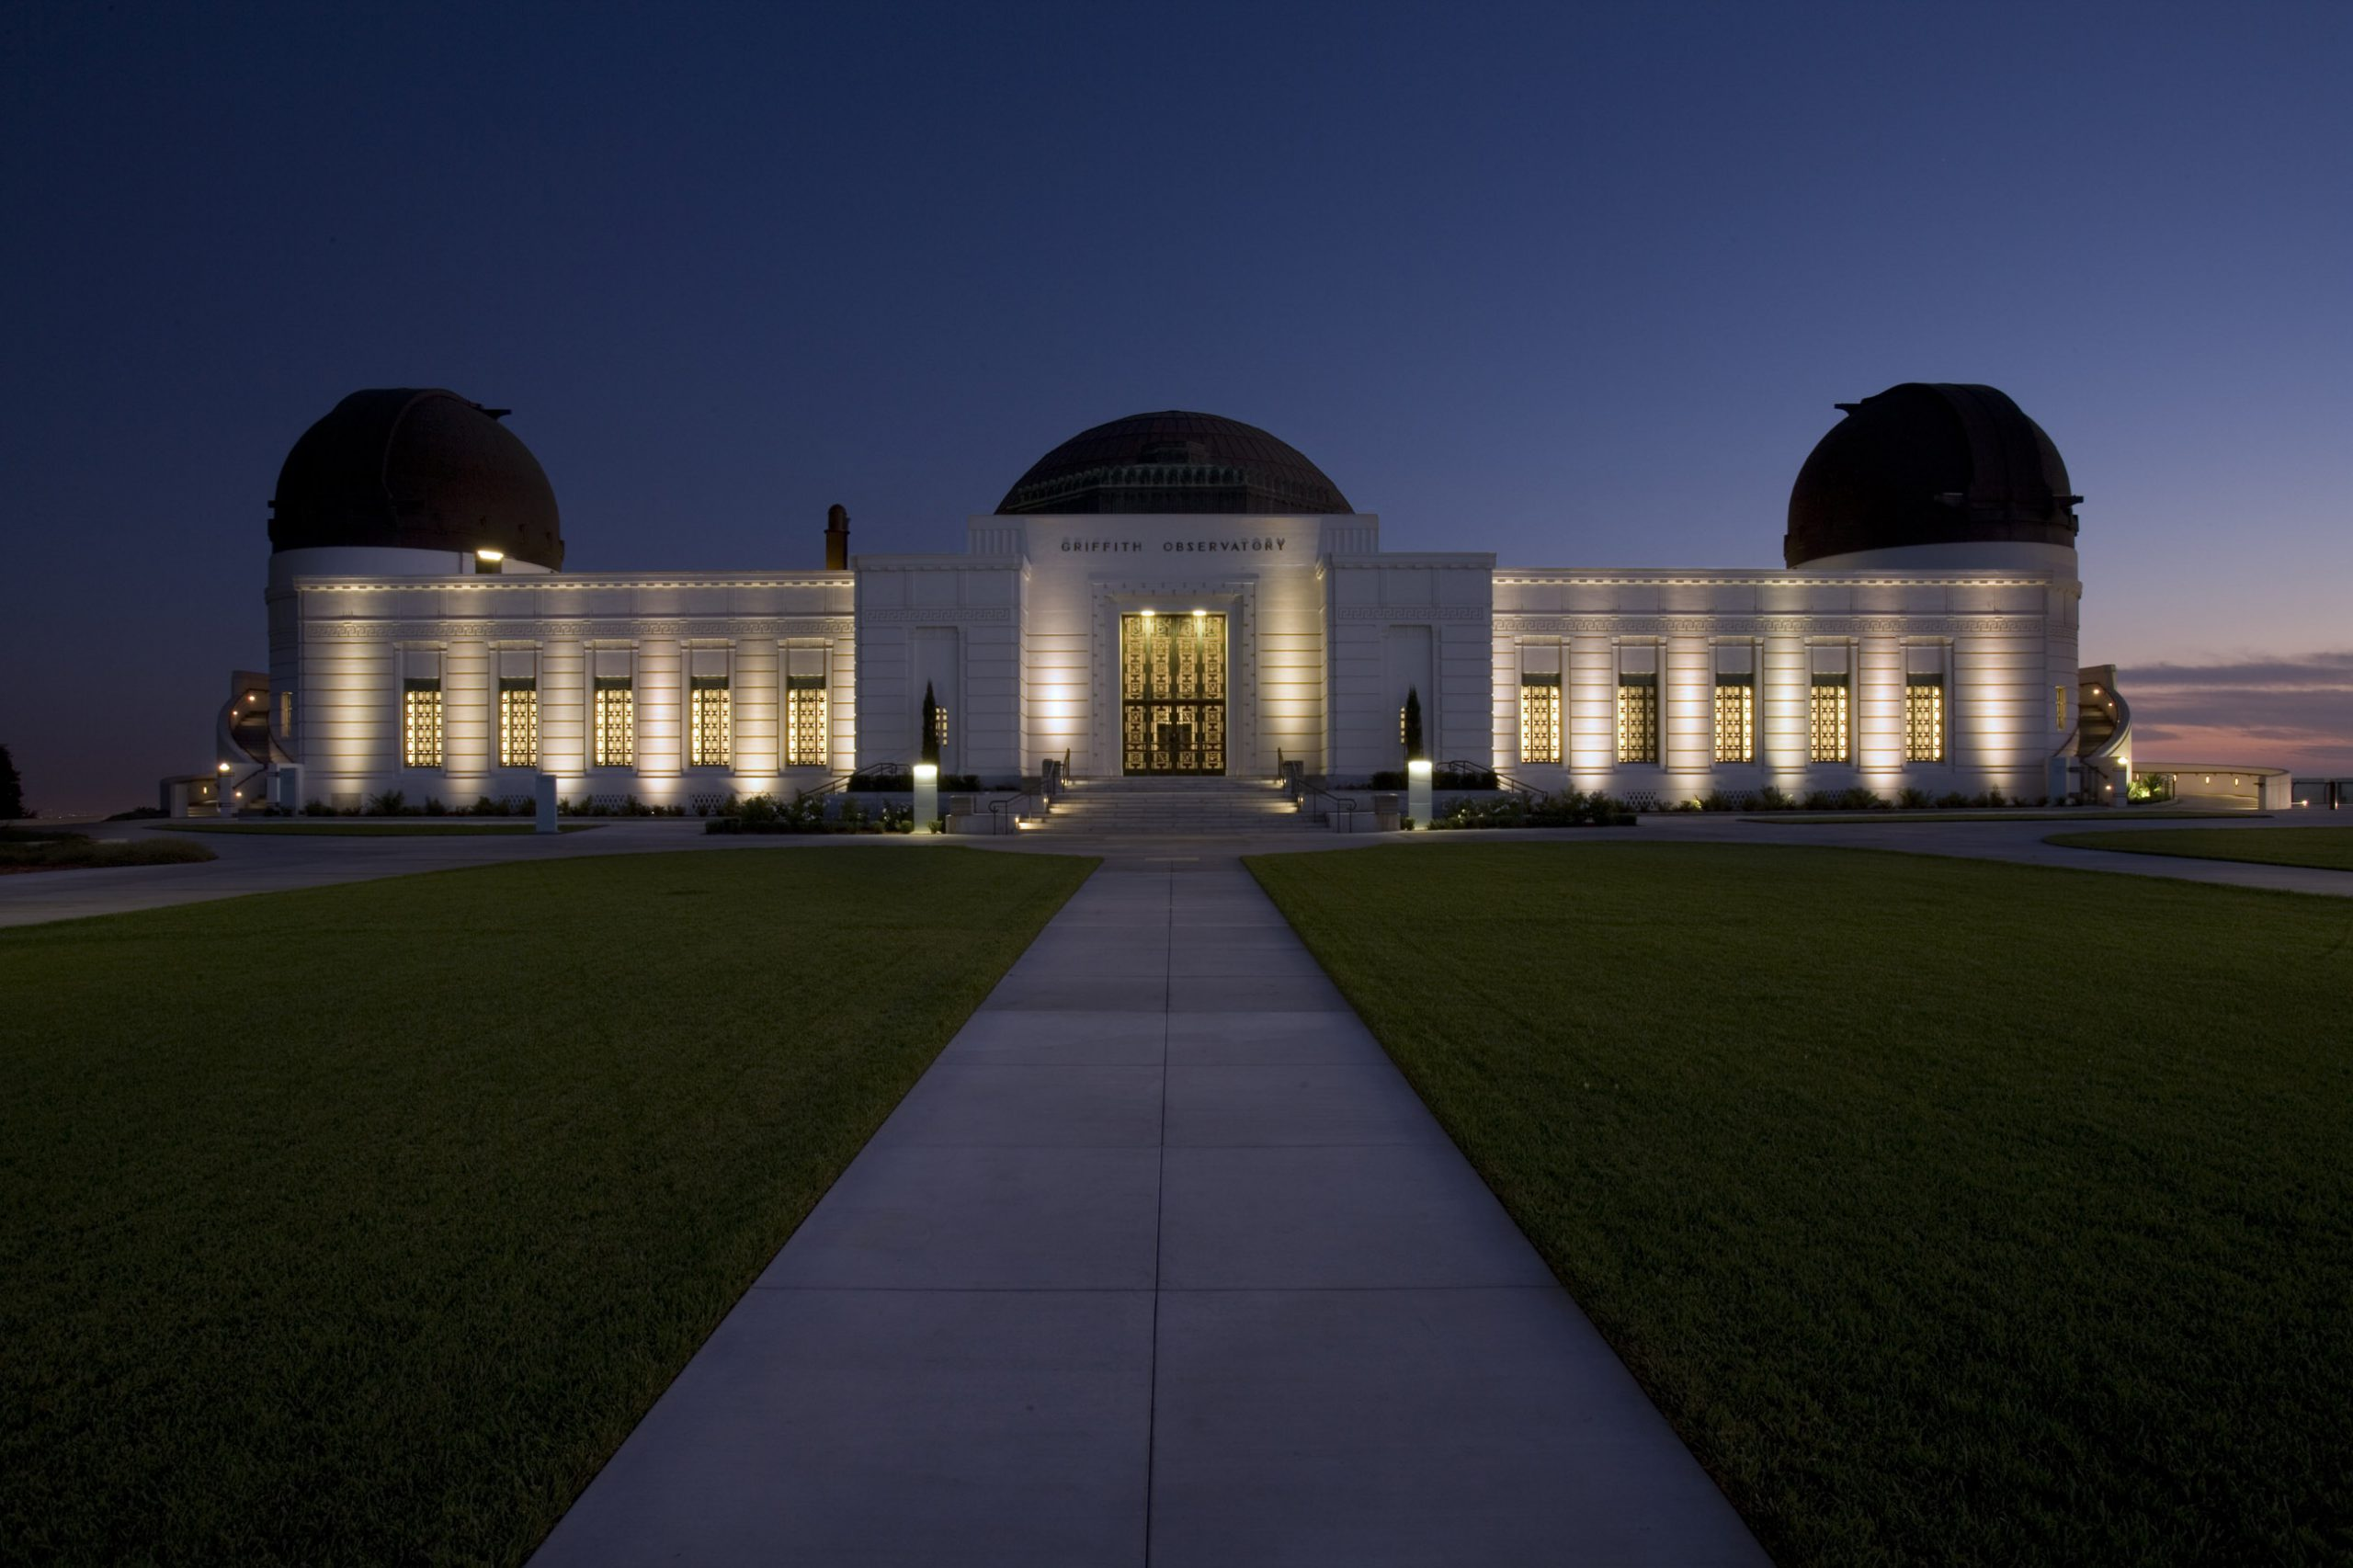 Project image 12 for Permanent Exhibits, Griffith Observatory